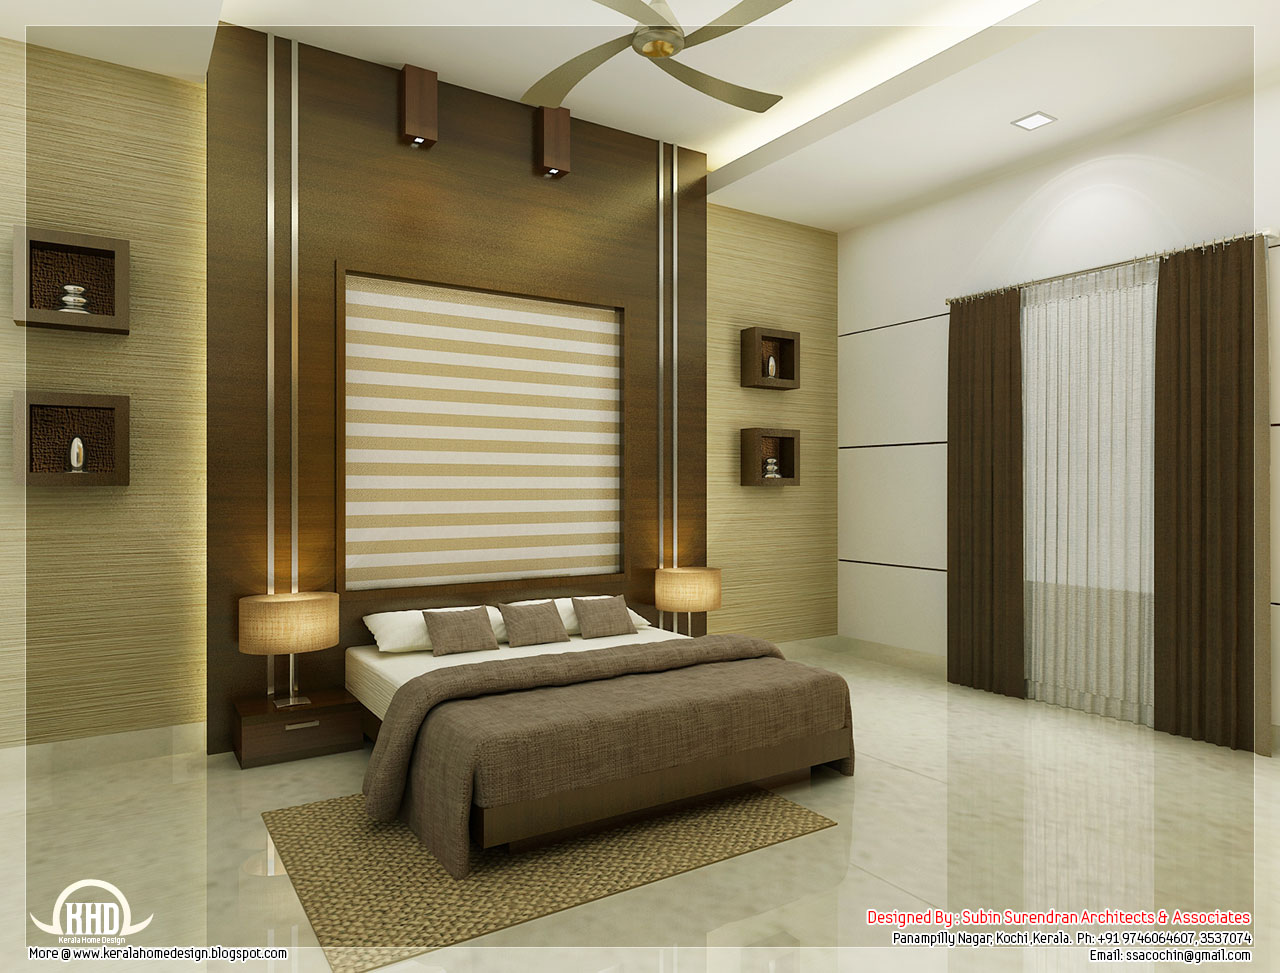 October 2013 architecture house plans for Interior bed design images